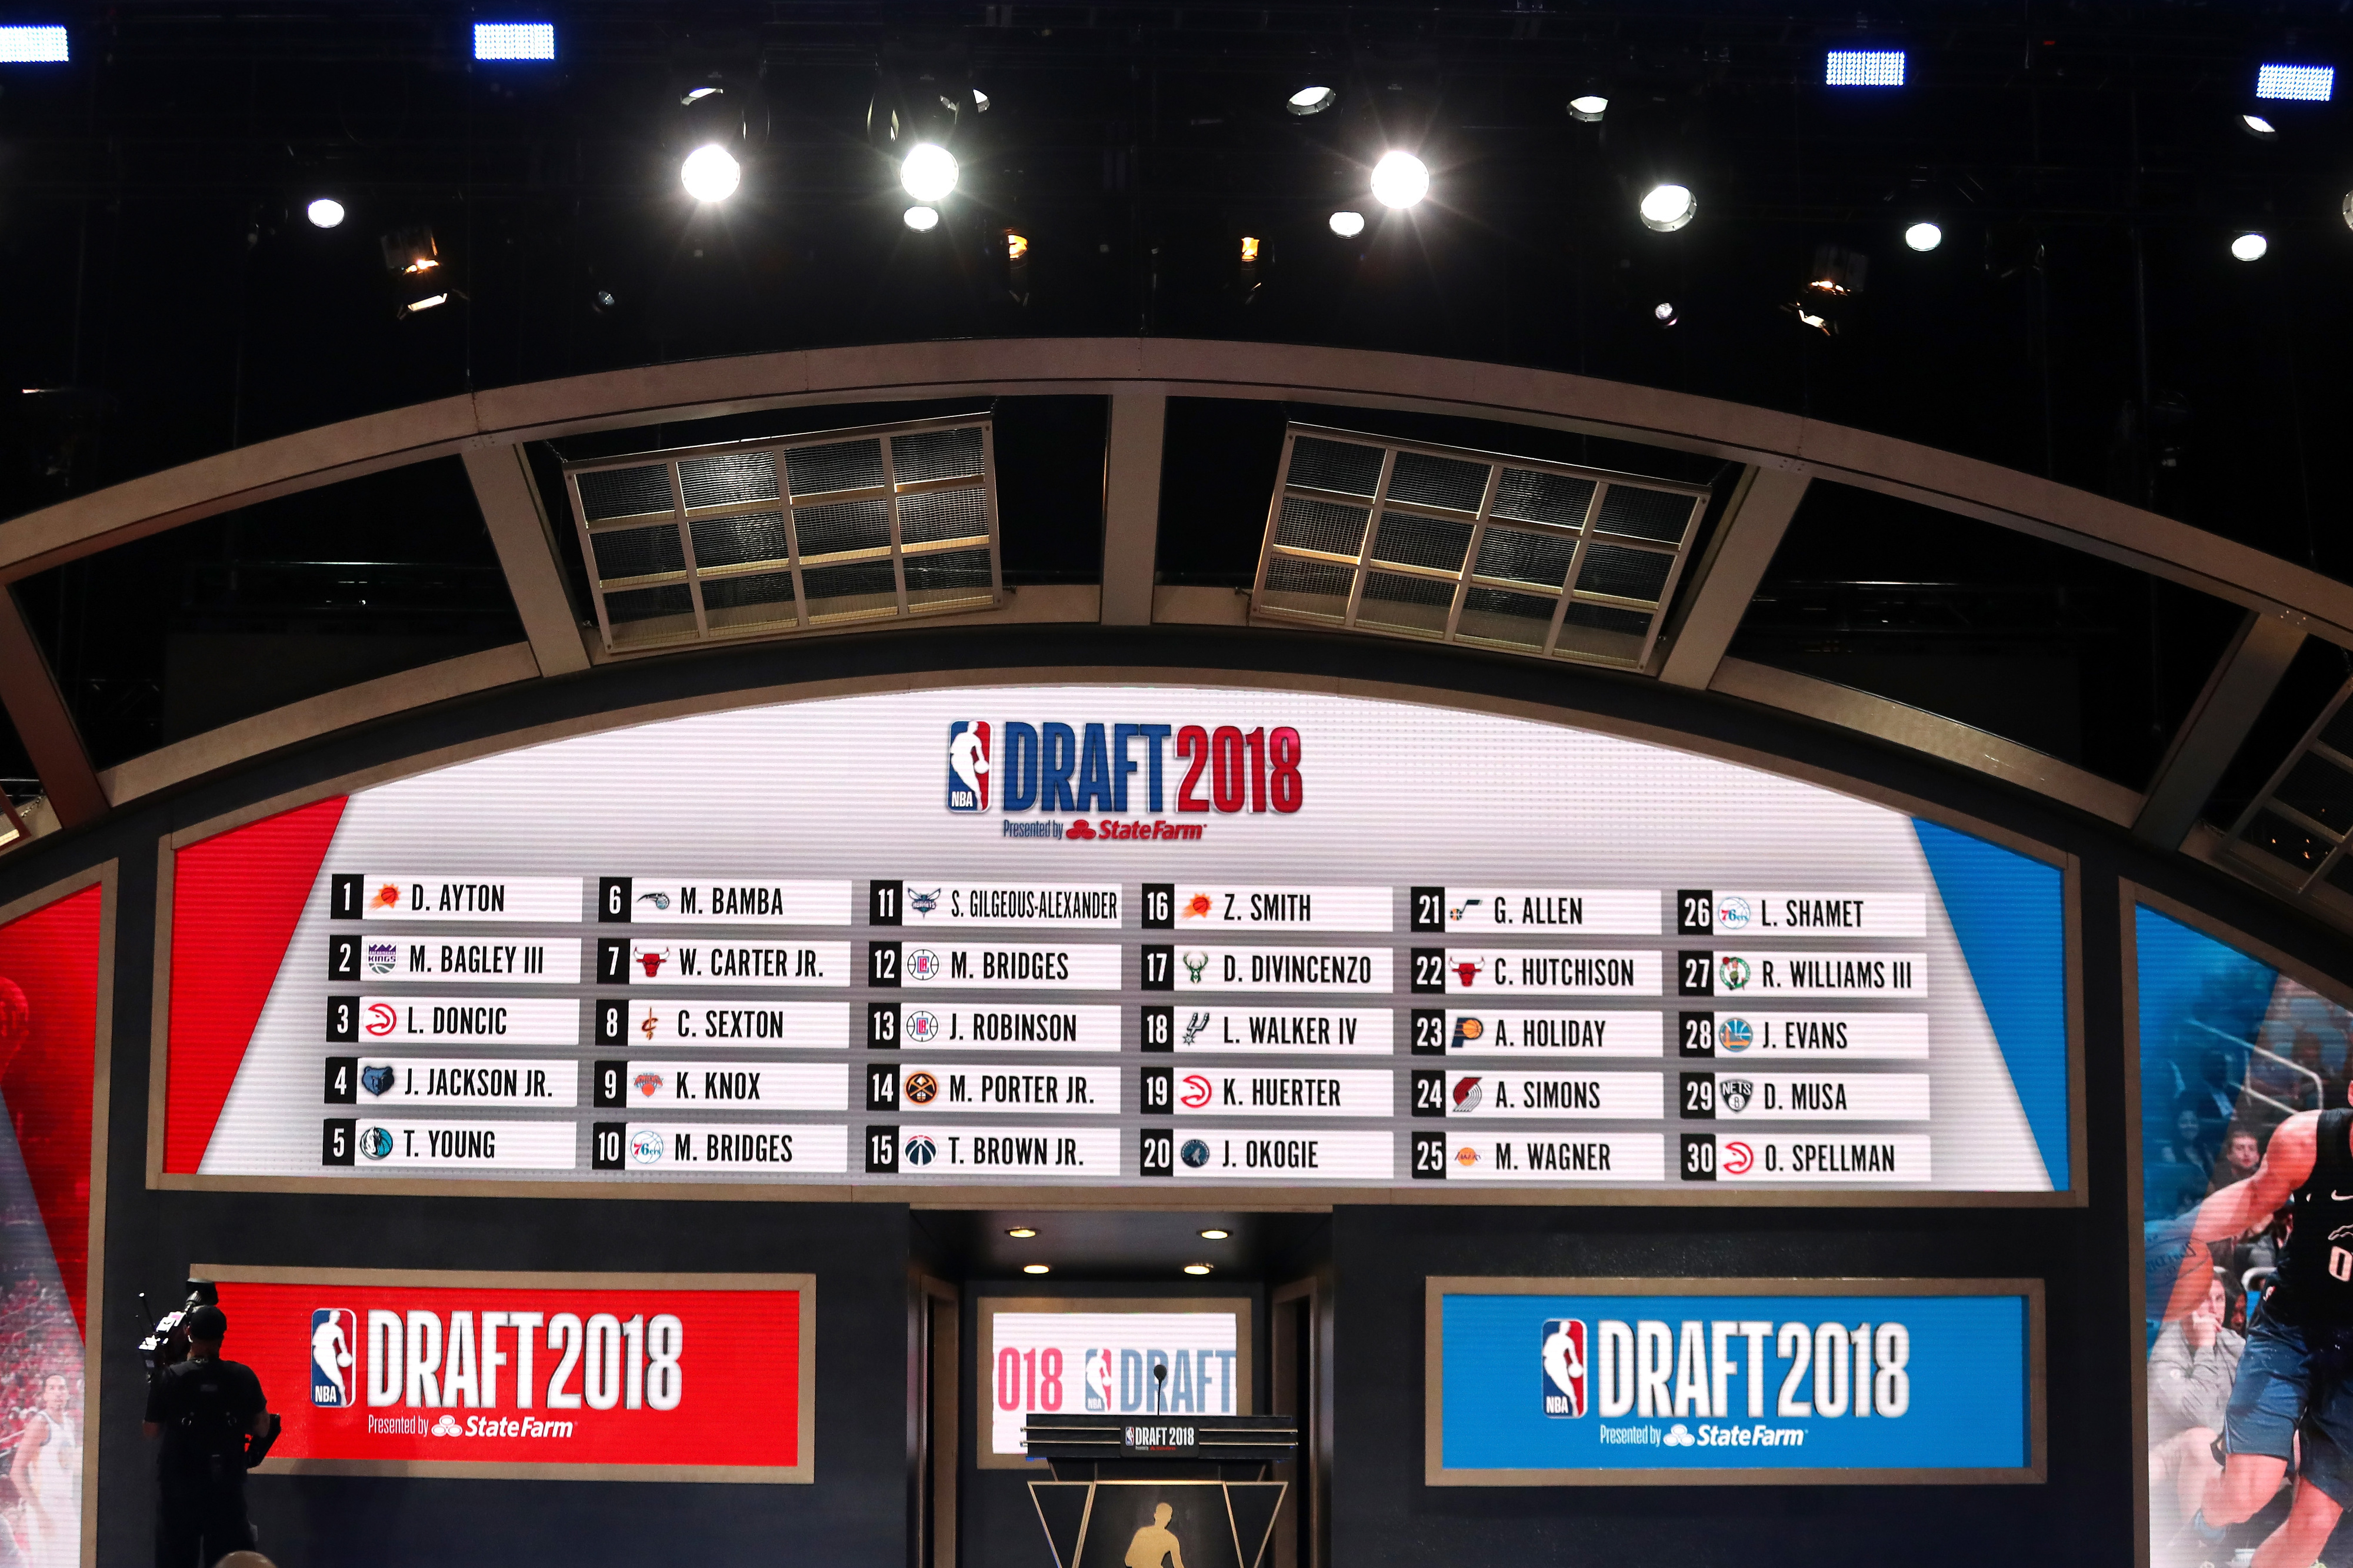 NBA: Vencedores e derrotados do draft